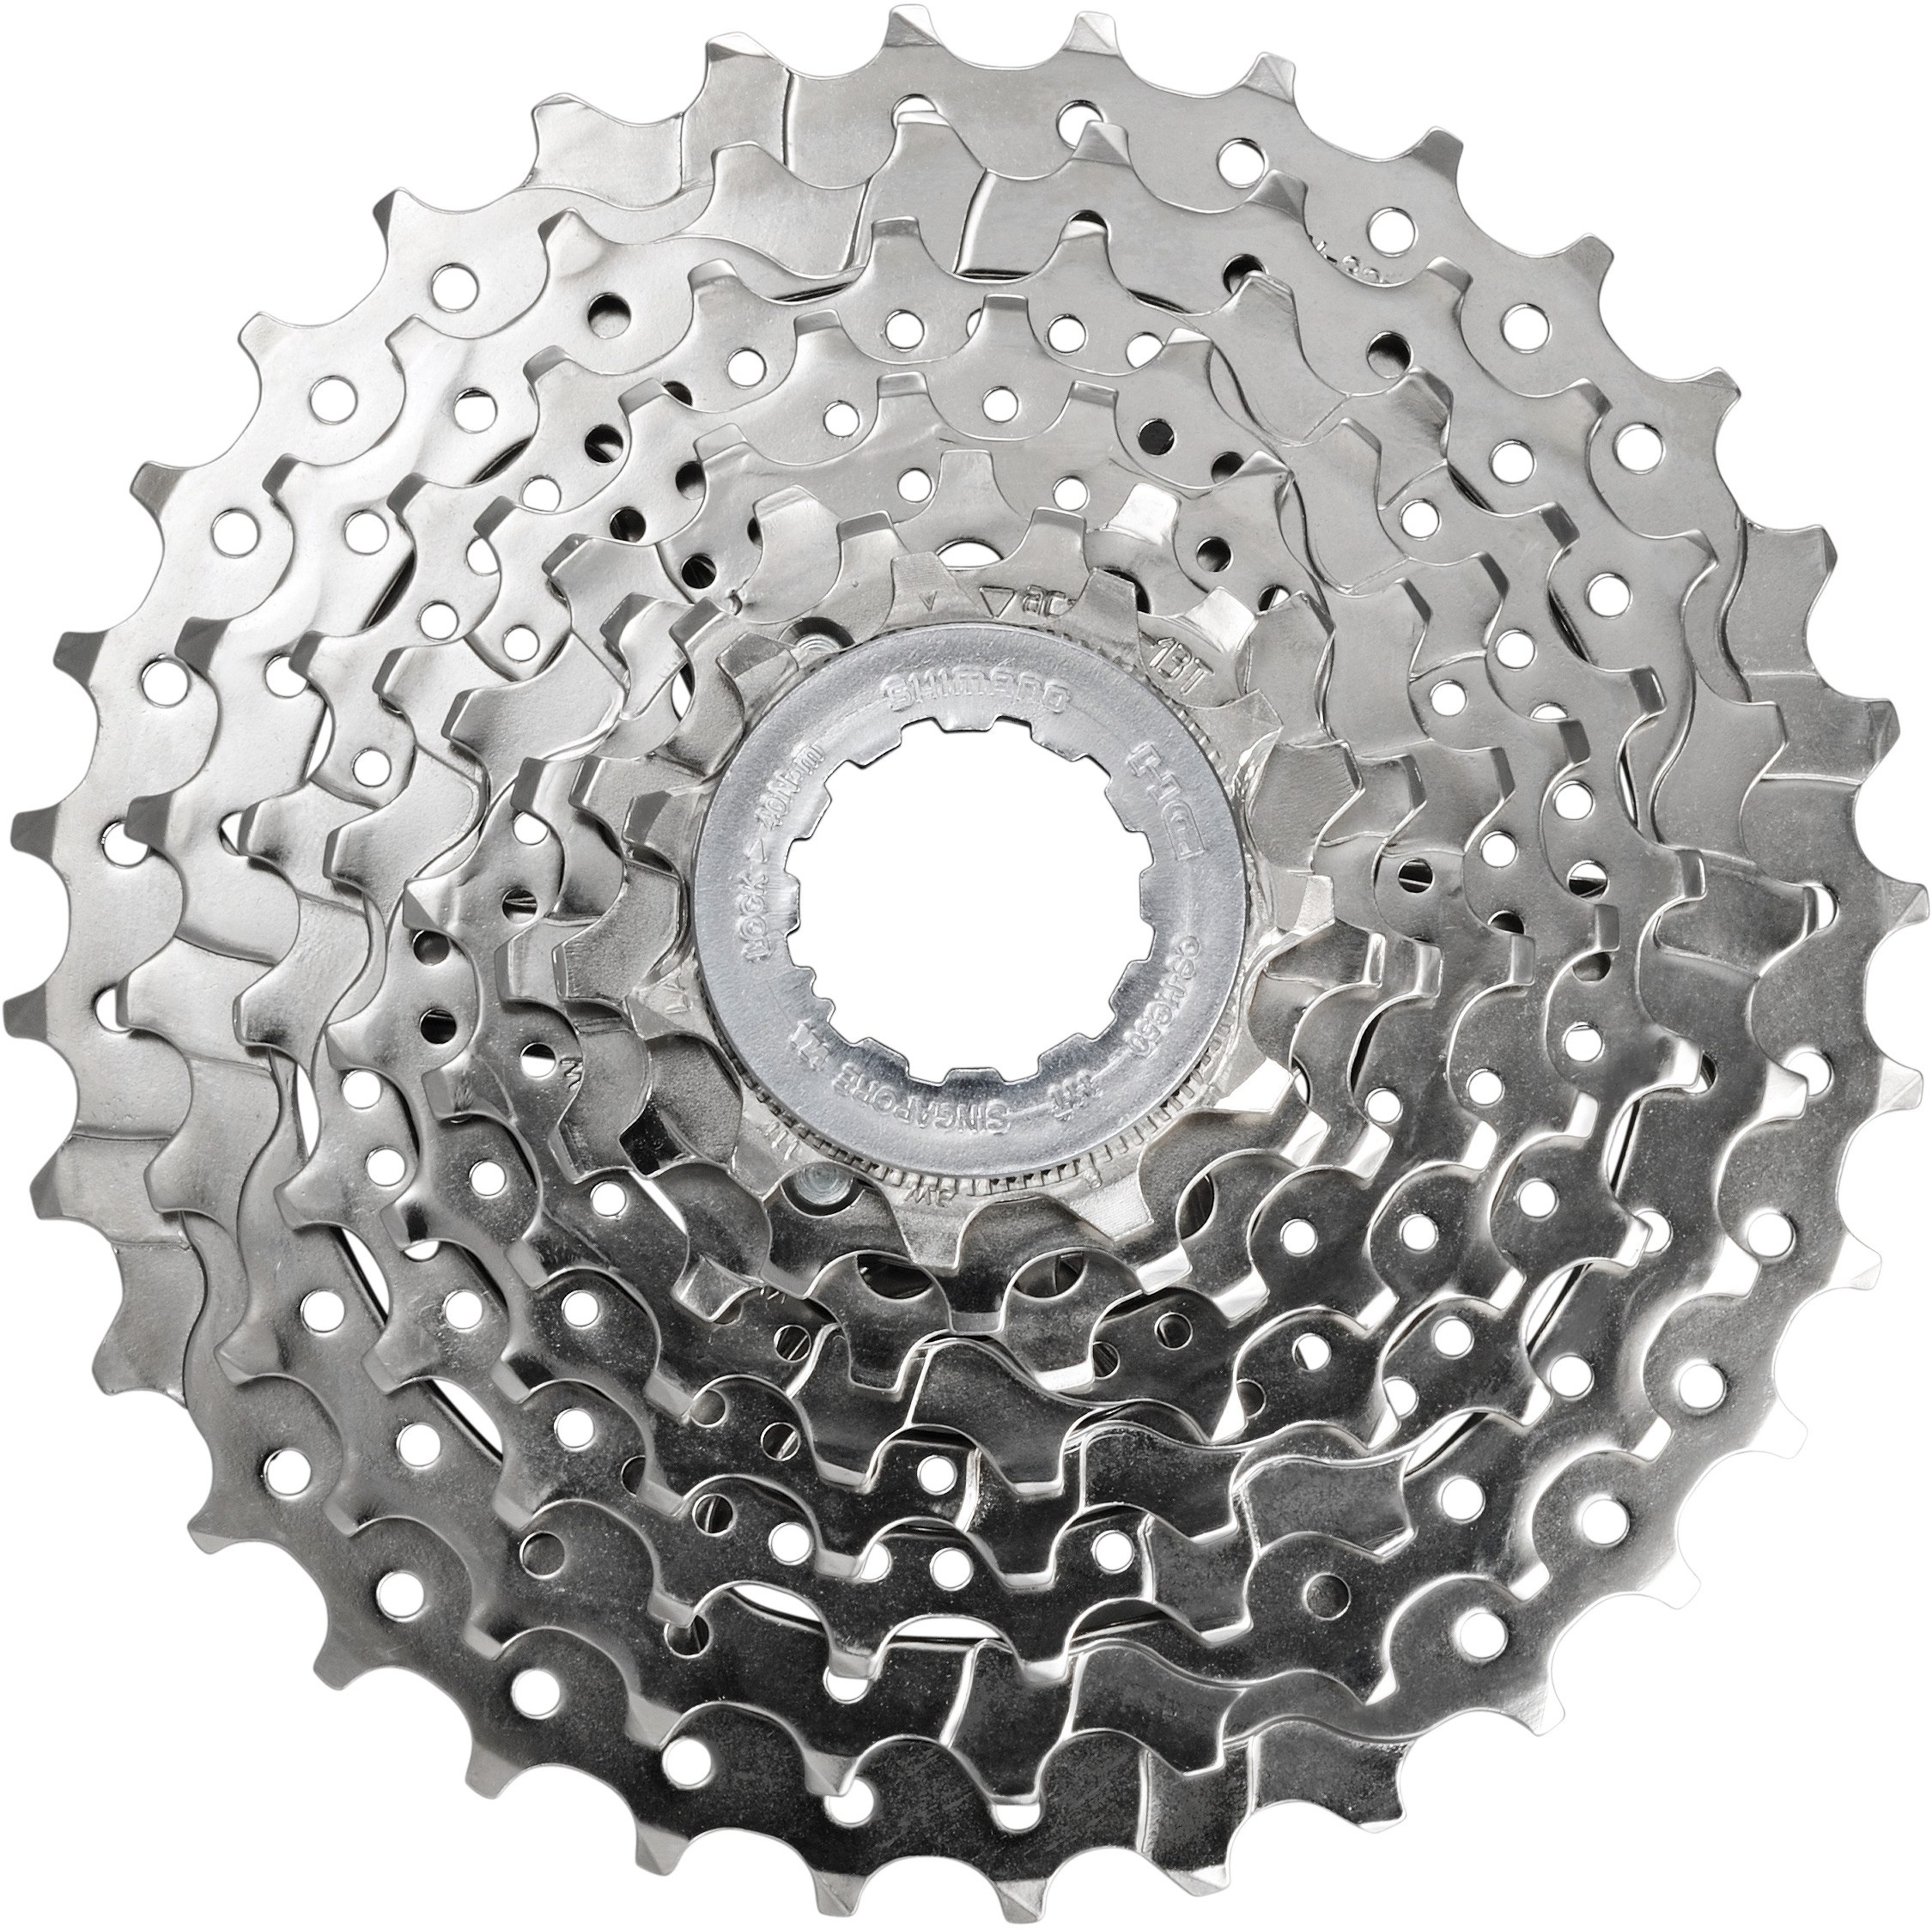 CS-HG50 8-speed cassette 13-26